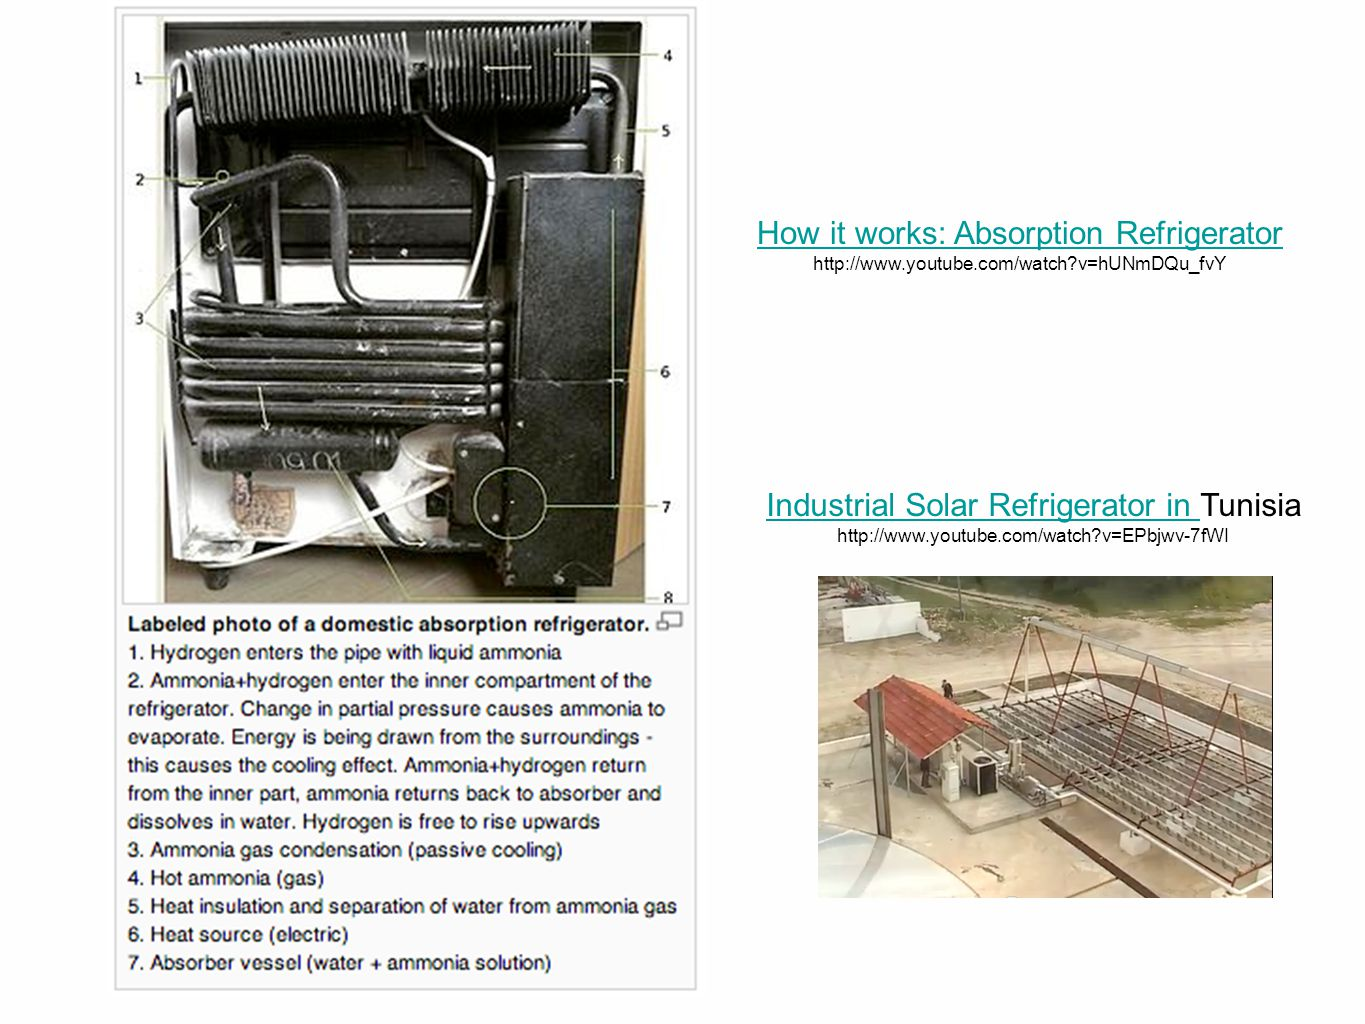 How it works: Absorption Refrigerator http://www.youtube.com/watch v=hUNmDQu_fvY Industrial Solar Refrigerator in Industrial Solar Refrigerator in Tunisia http://www.youtube.com/watch v=EPbjwv-7fWI